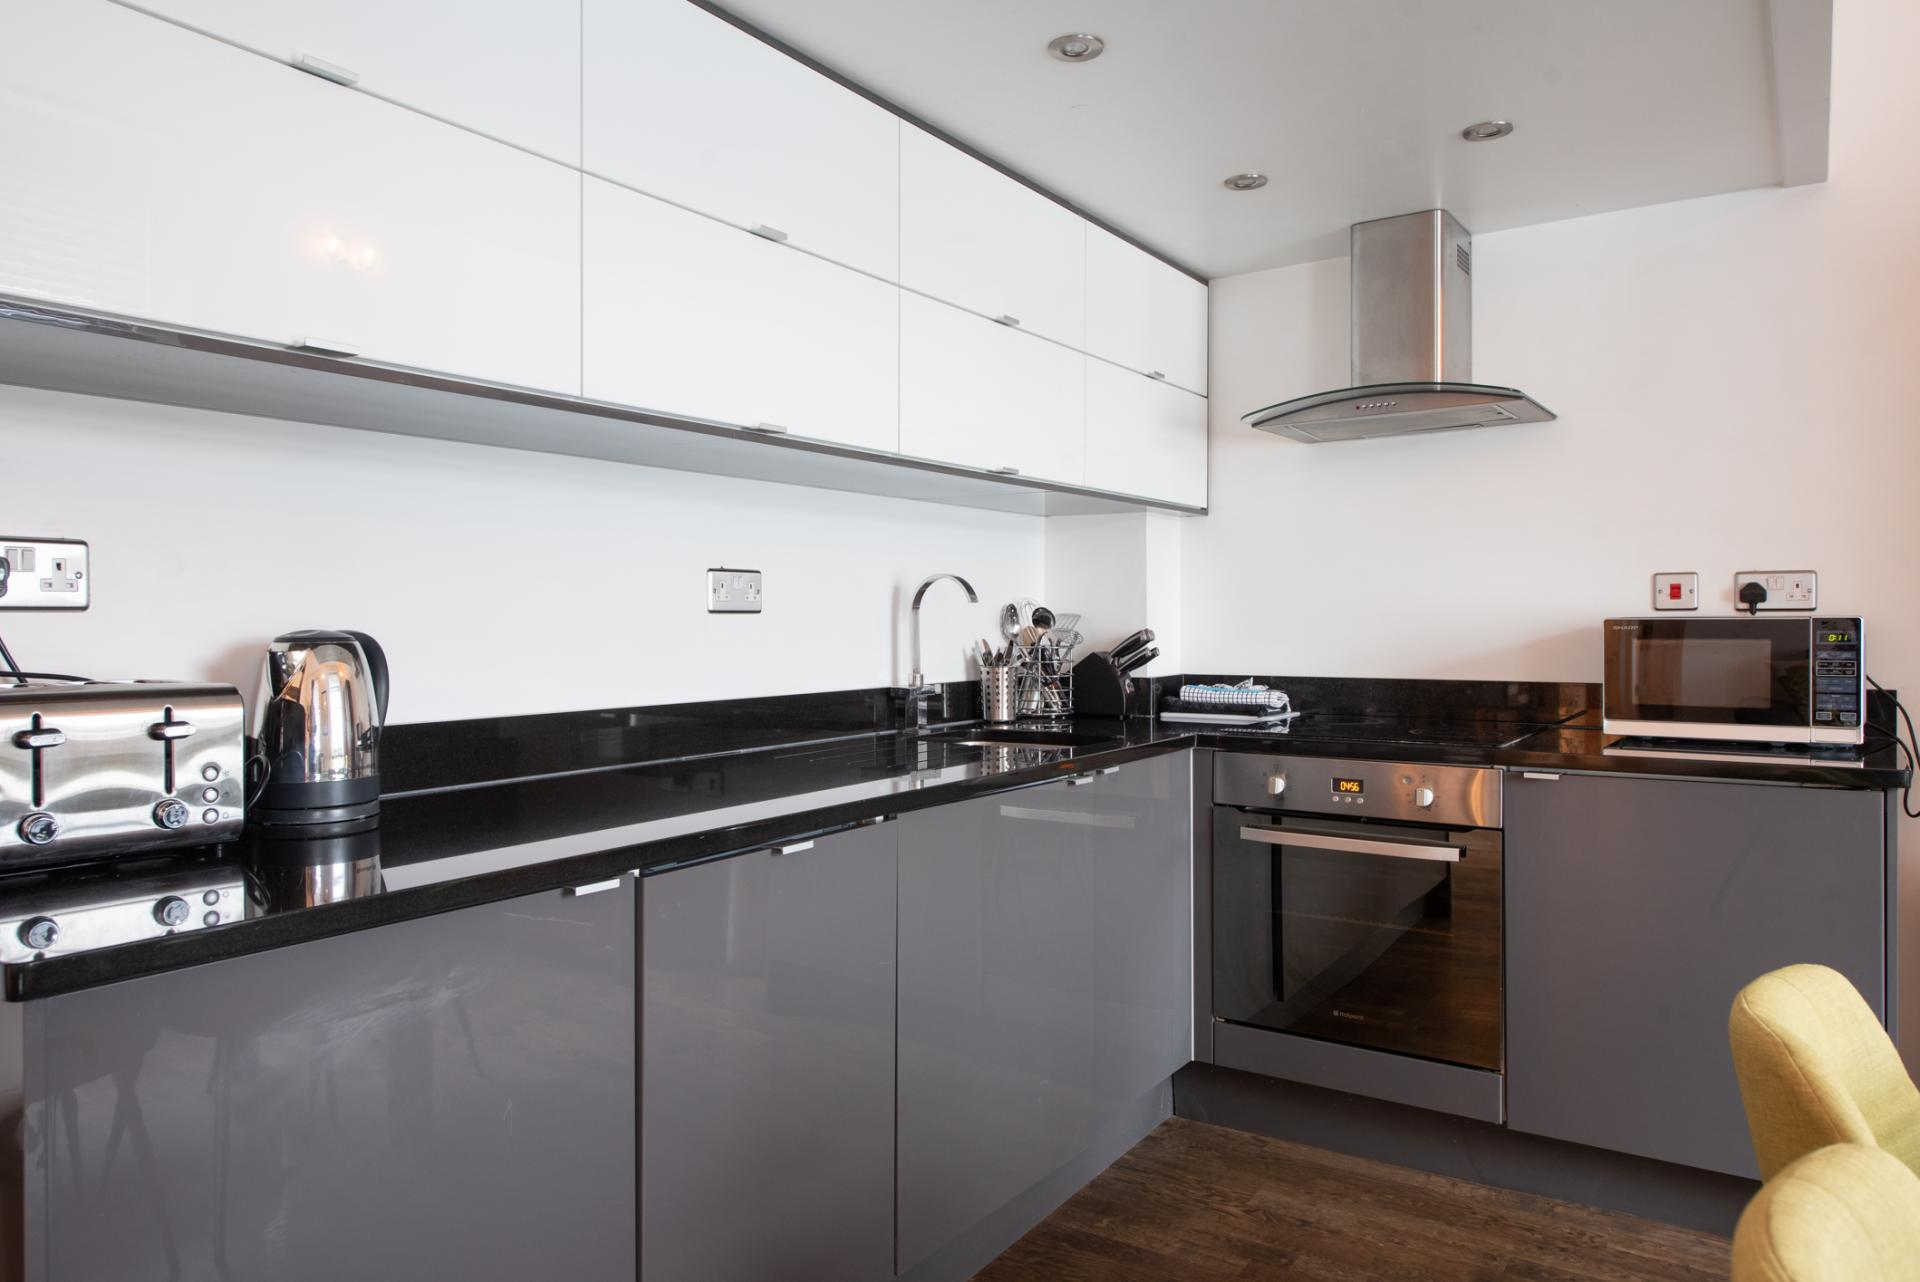 Kitchen at Chelsea Green Apartments, Chelsea, London